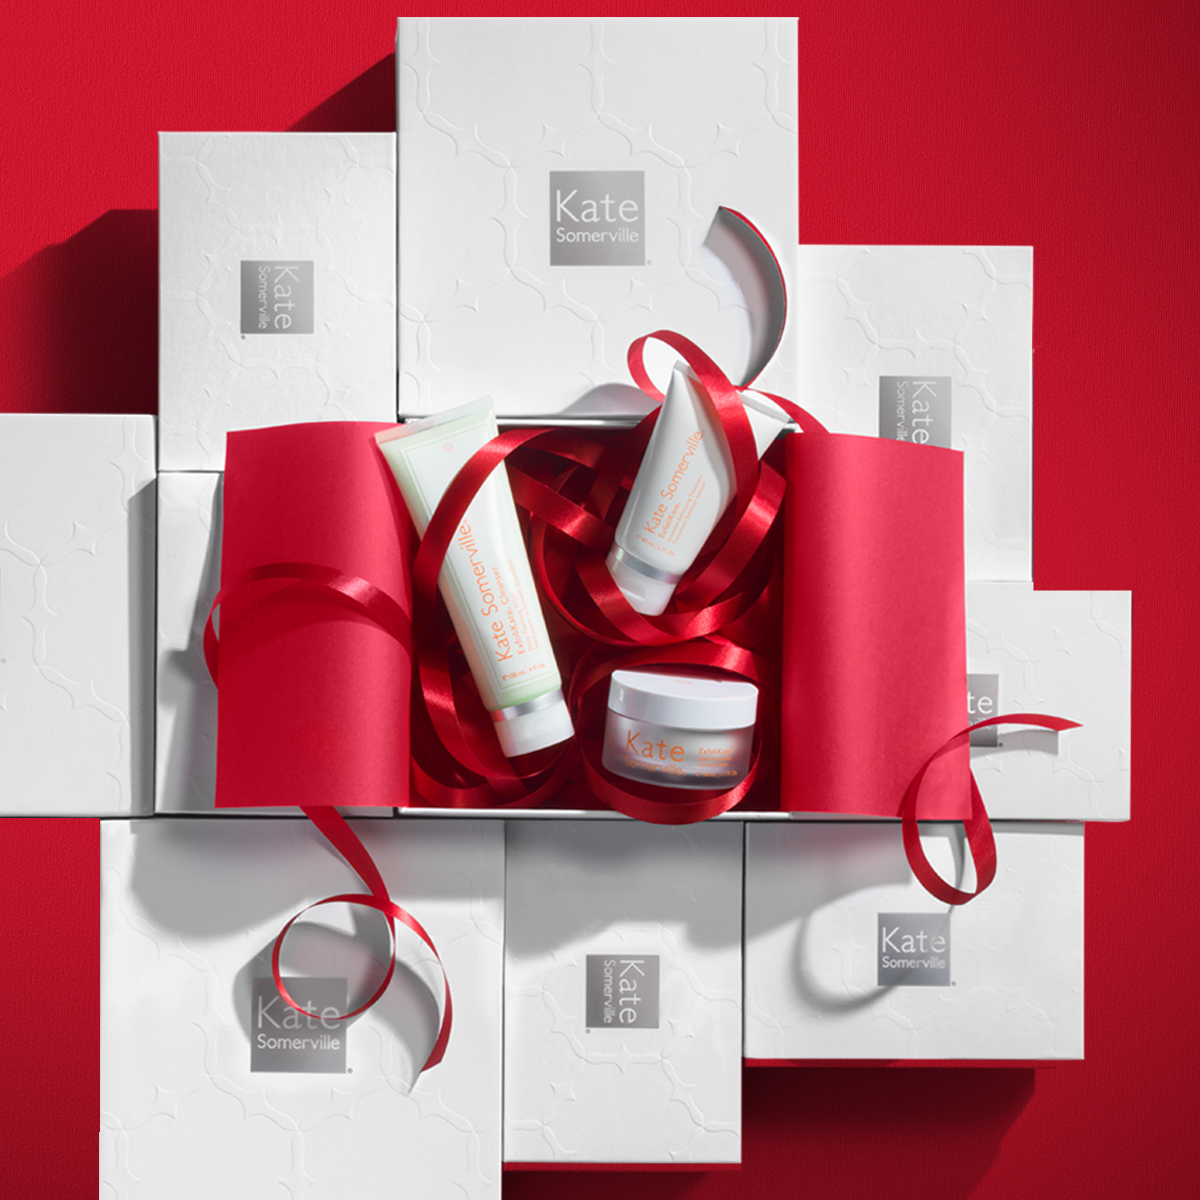 12.06.18 US GiftBox 1200x1200 - KATE SOMERVILLE BUILD YOUR OWN BOX 30% OFFER